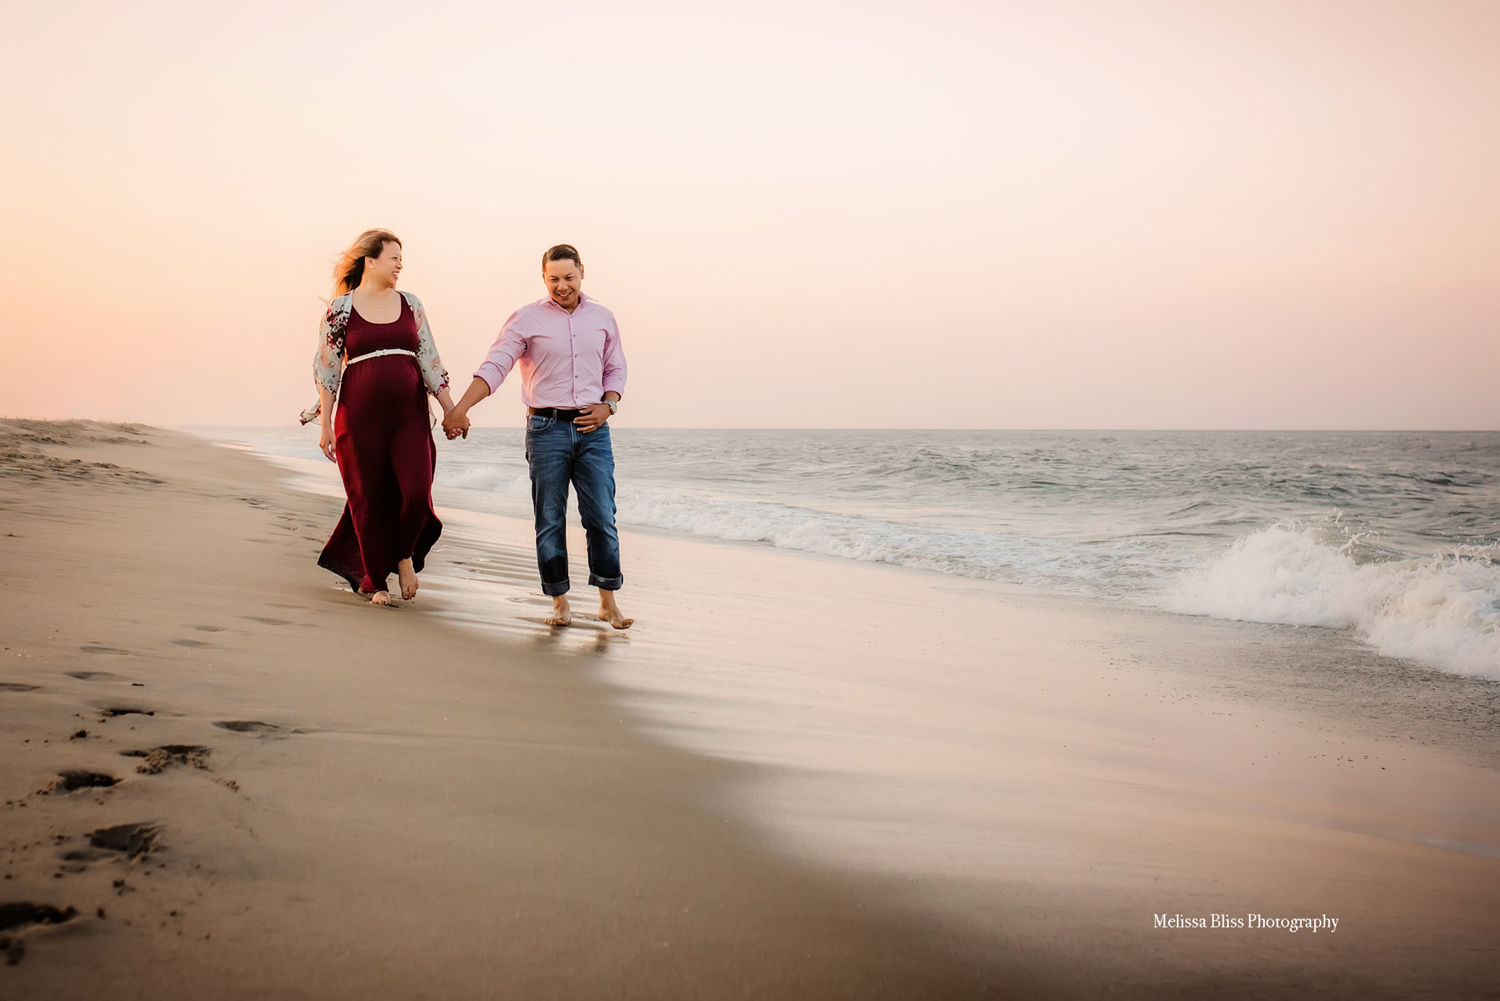 beach-maternity-pictures-melissa-bliss-photography-virginia-beach-maternity-photographers.jpg